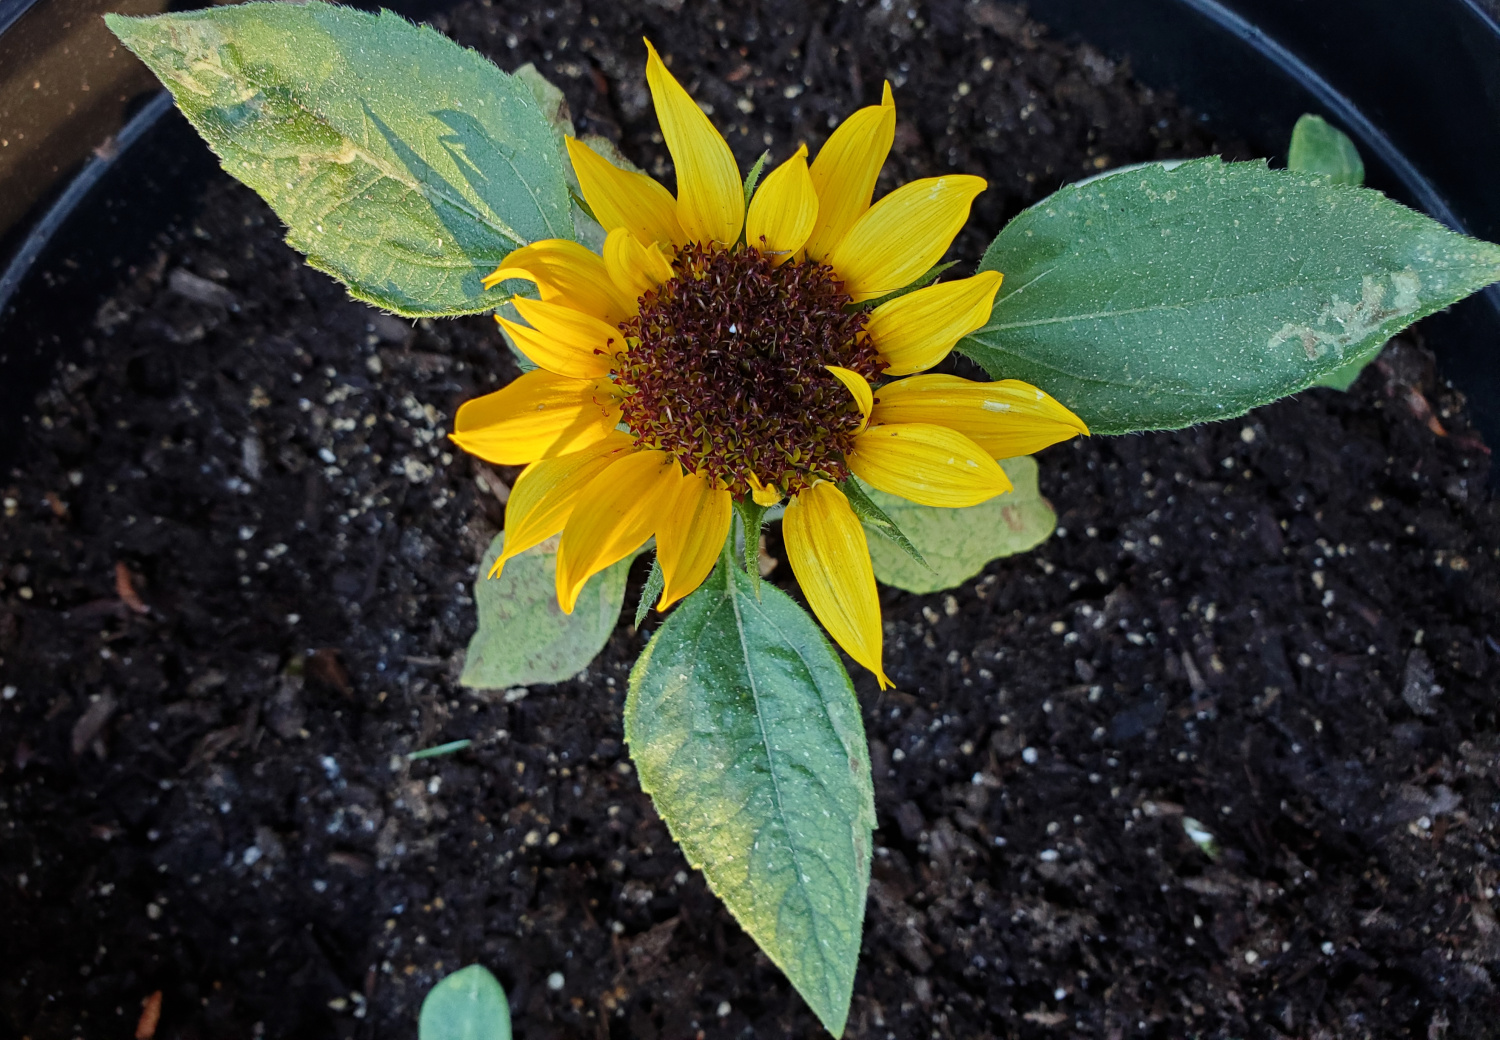 The sunflower has stopped growing in height, but still shows off its one bright bloom